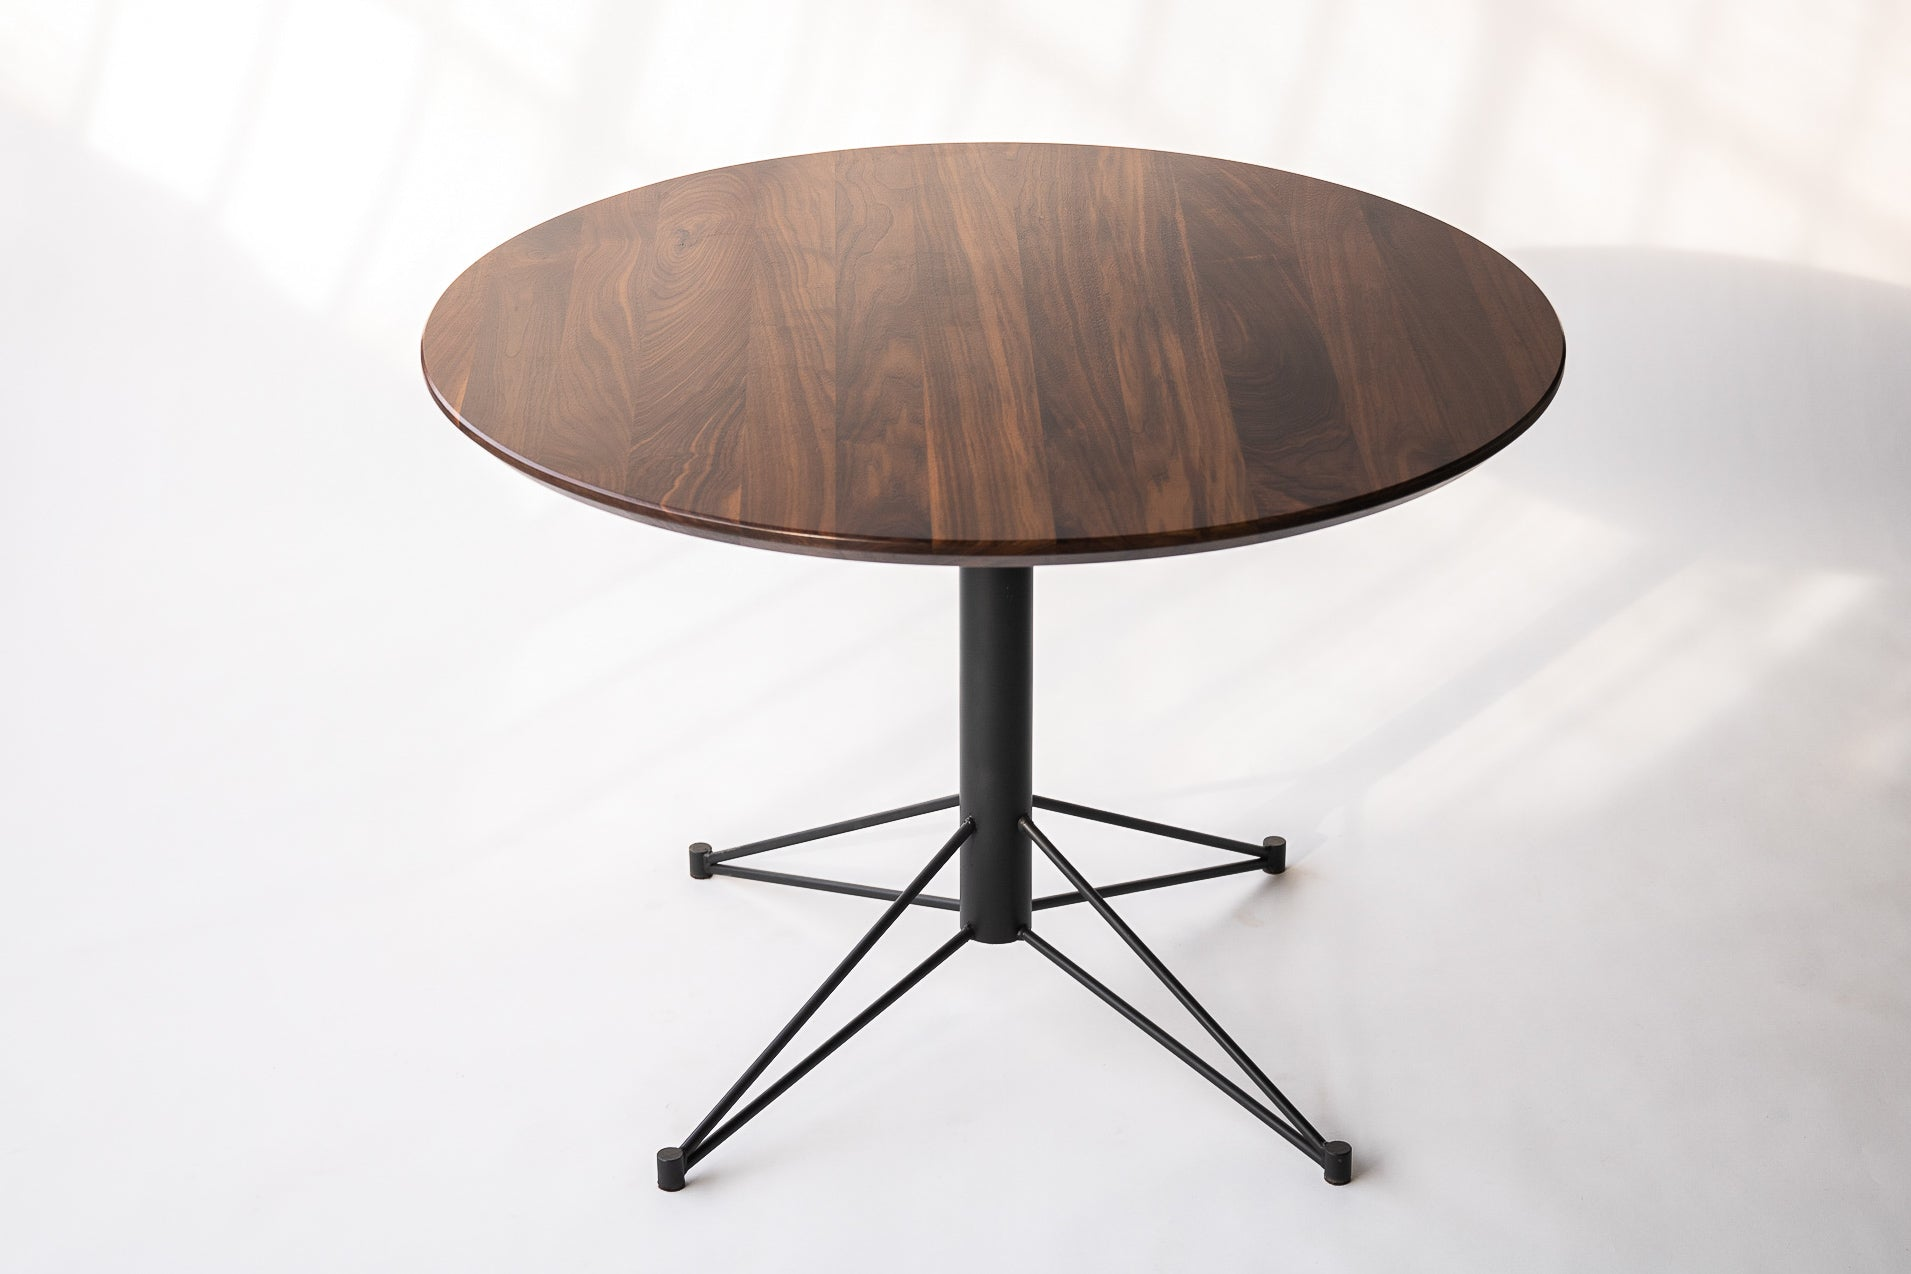 The Mast Table - Round Dining Table with Metal Base by Edgework Creative